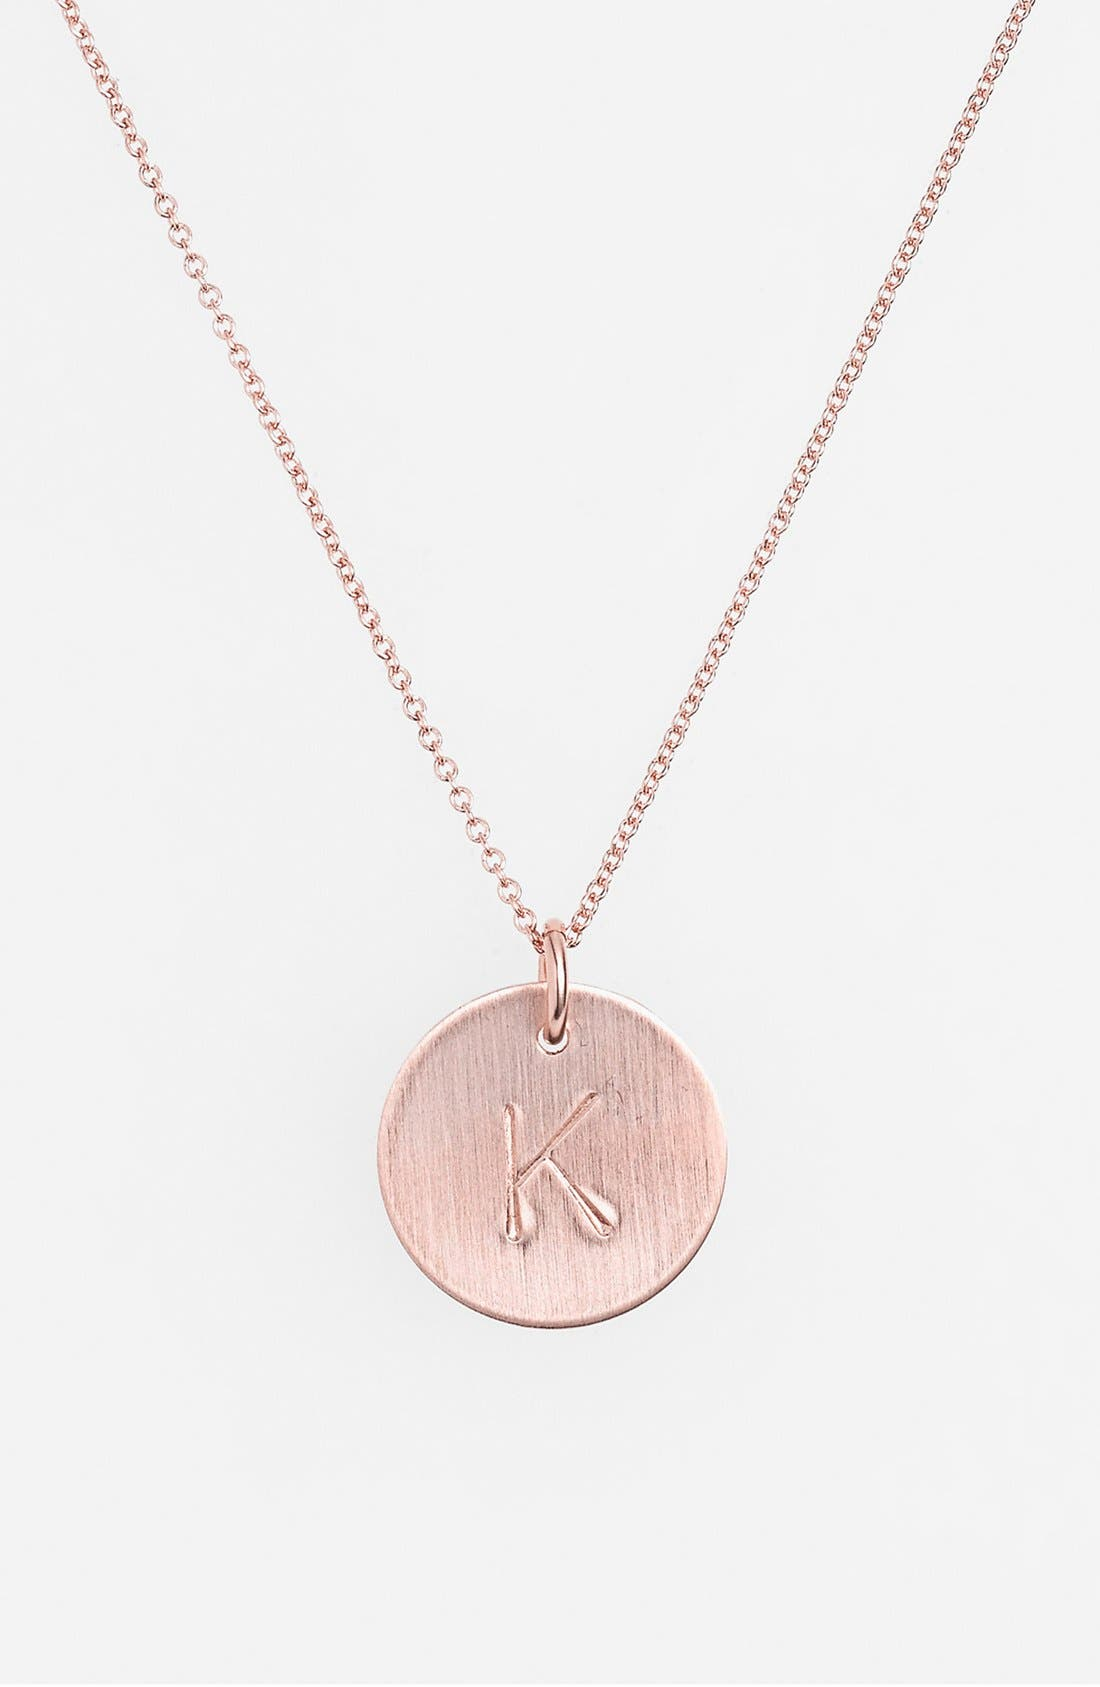 14k-Rose Gold Fill Initial Disc Necklace,                             Main thumbnail 11, color,